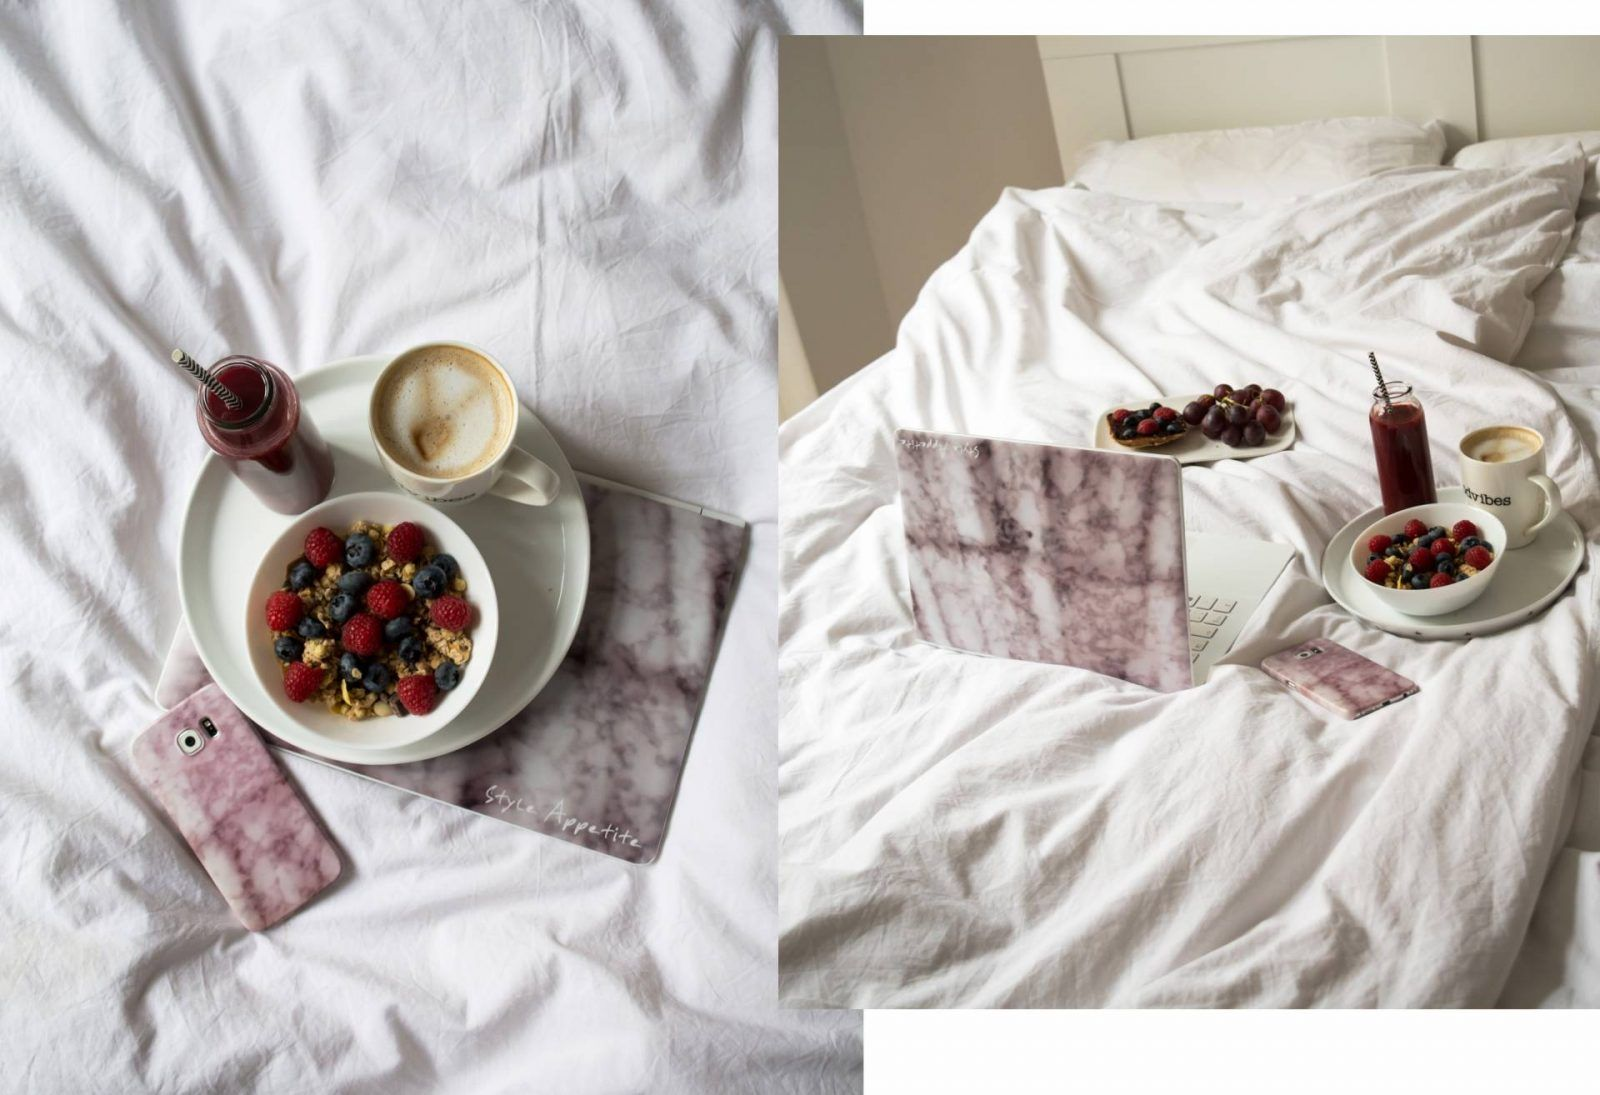 Breakfast in Bed  #interior #home with #marble #decor # marmor #caseapp #breakfastinbed # breakfast #smoothie #coffee